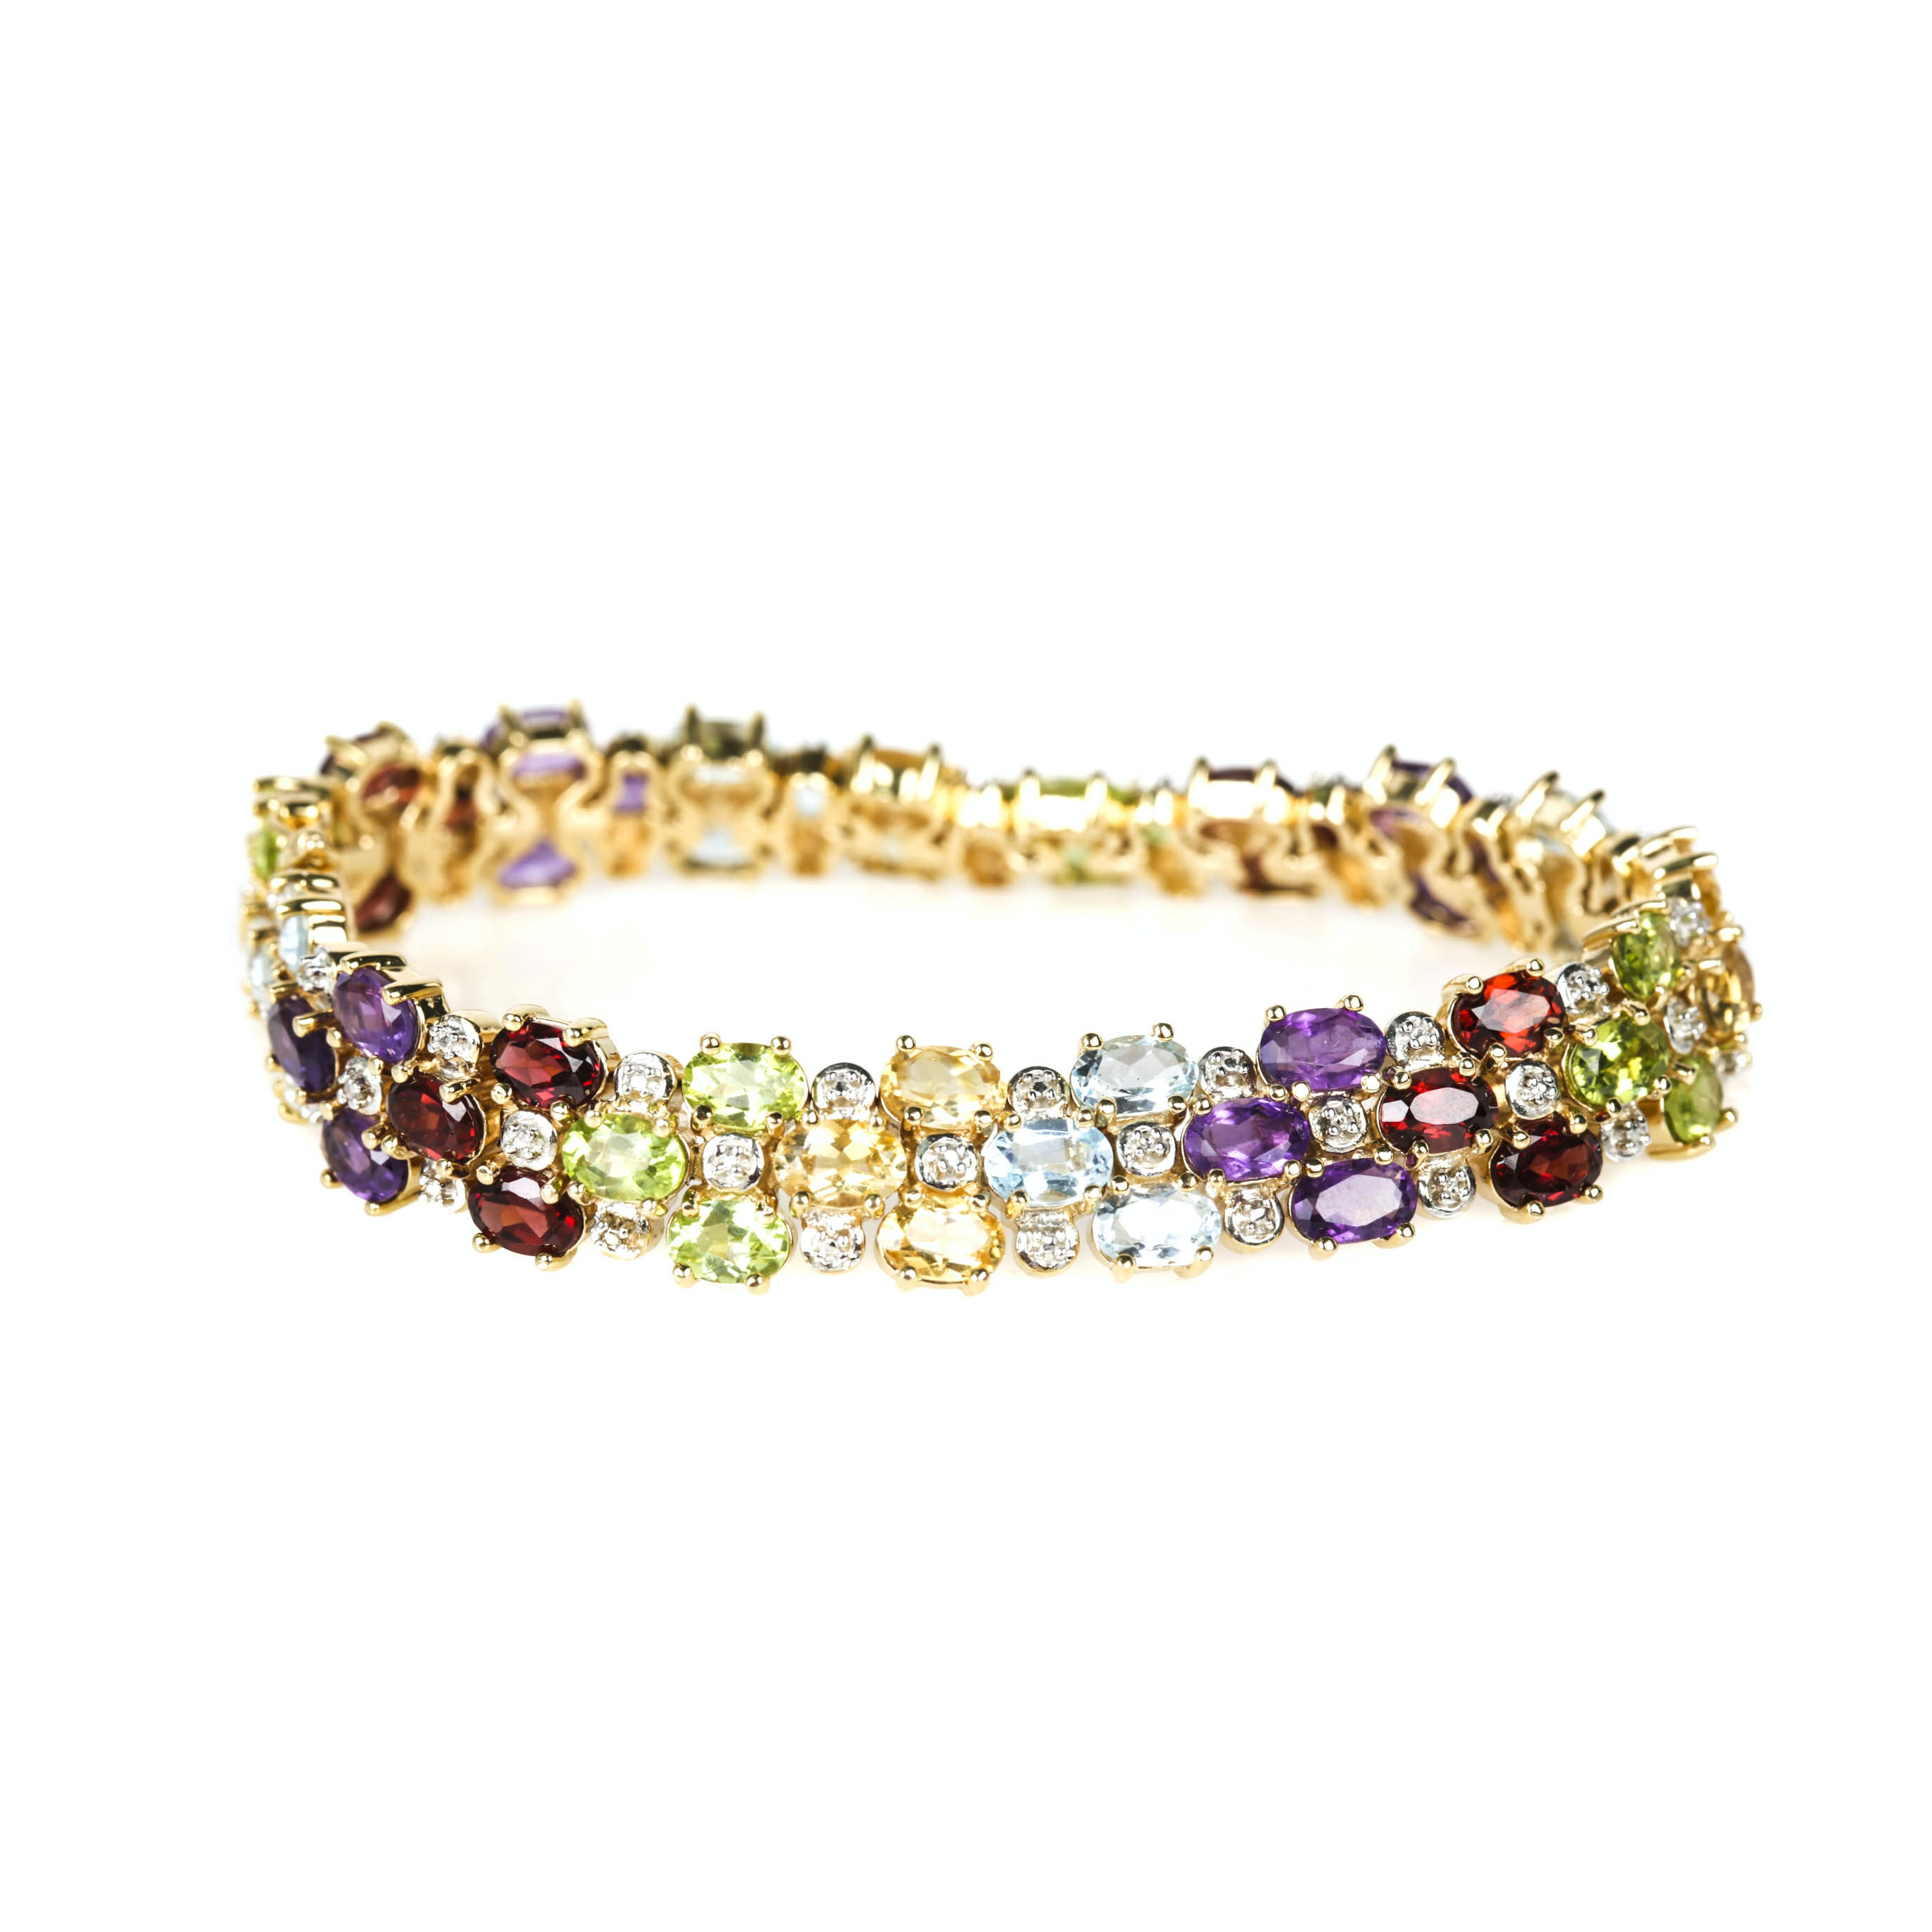 Gold Wash Sterling Silver Gemstone and Diamond Bracelet and Ring